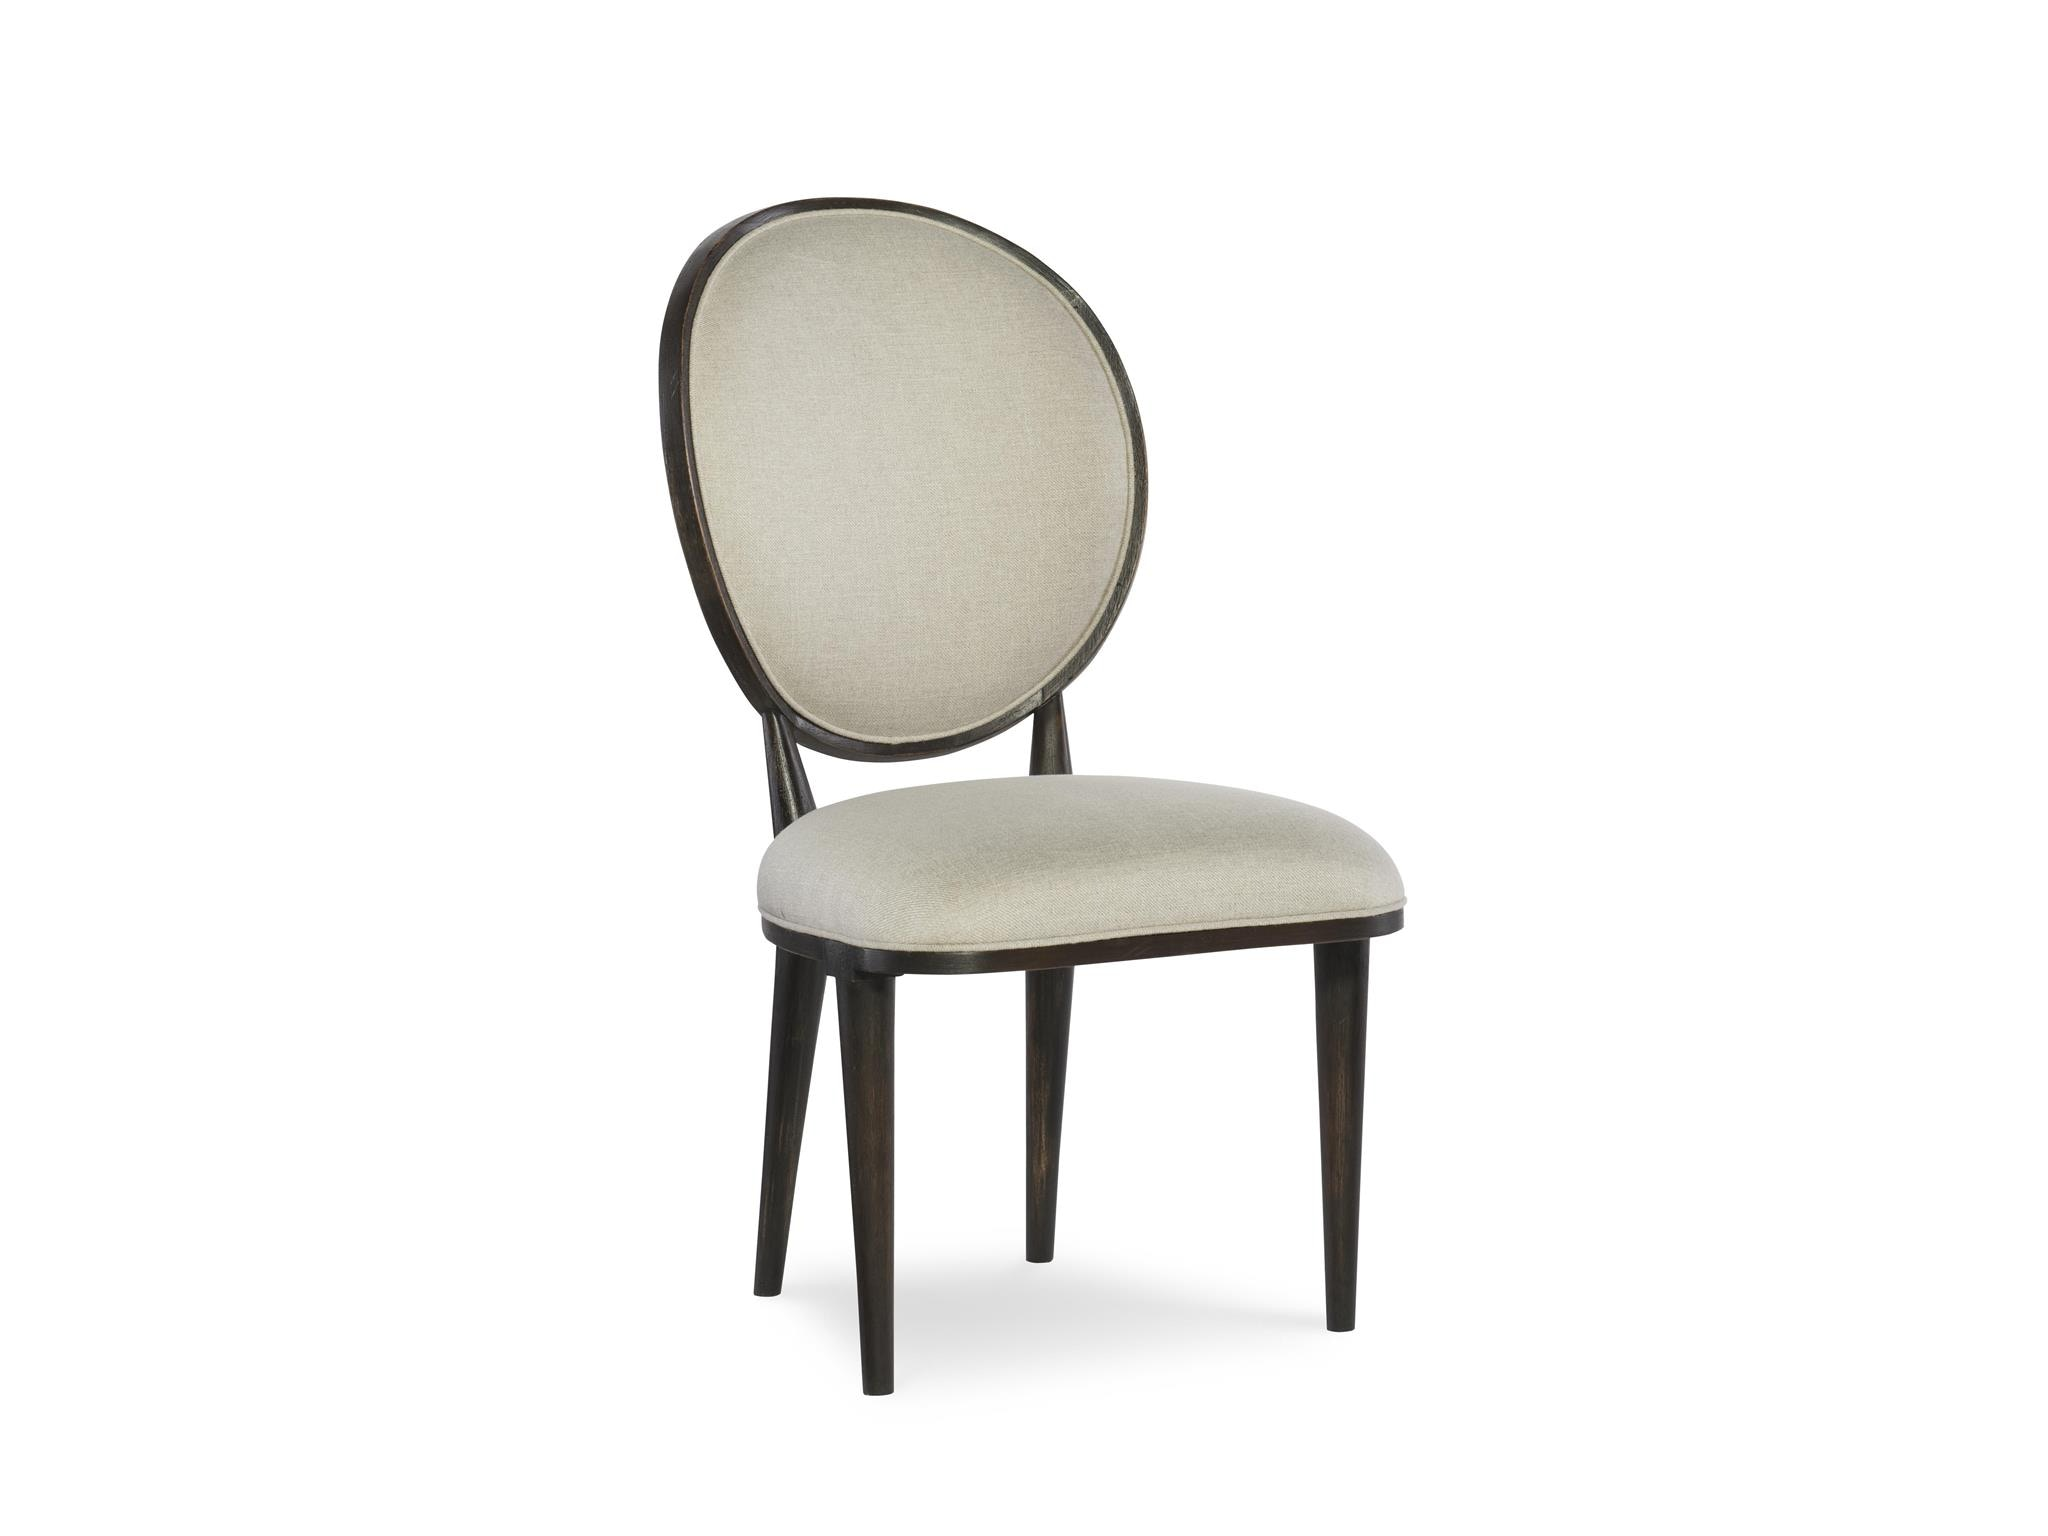 Fine Furniture Design Dining Room Madrasi Dining Chair 8008SC   Giorgi  Brothers   South San Francisco, CA